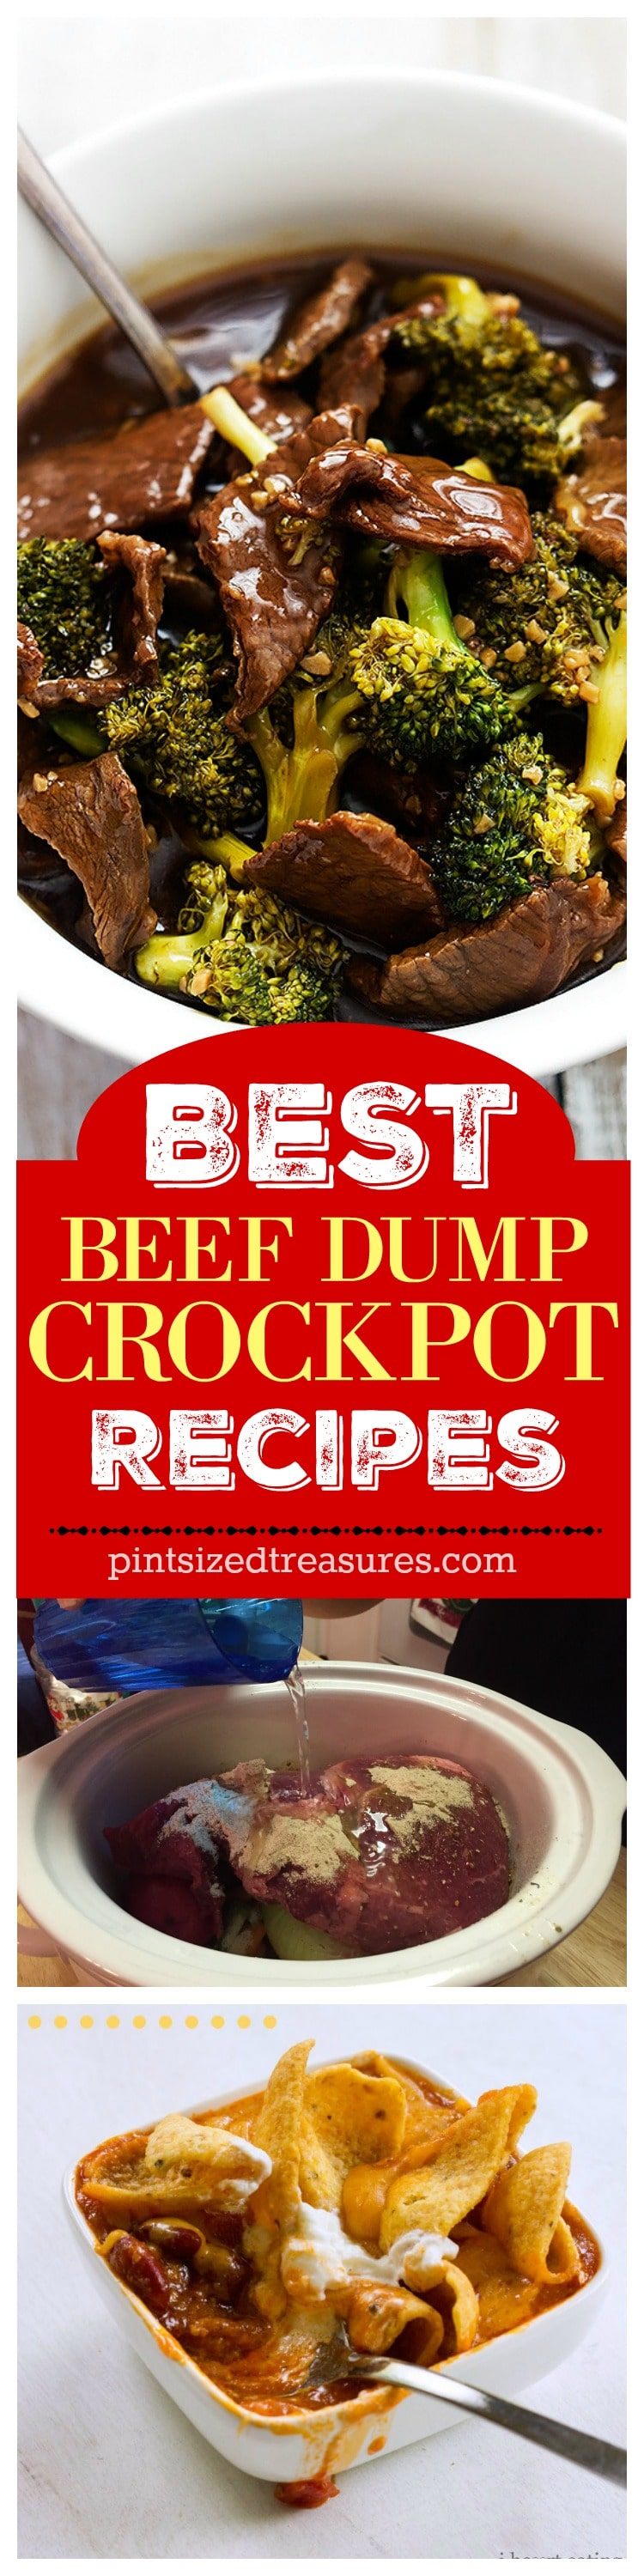 beef dump recipes collage-1